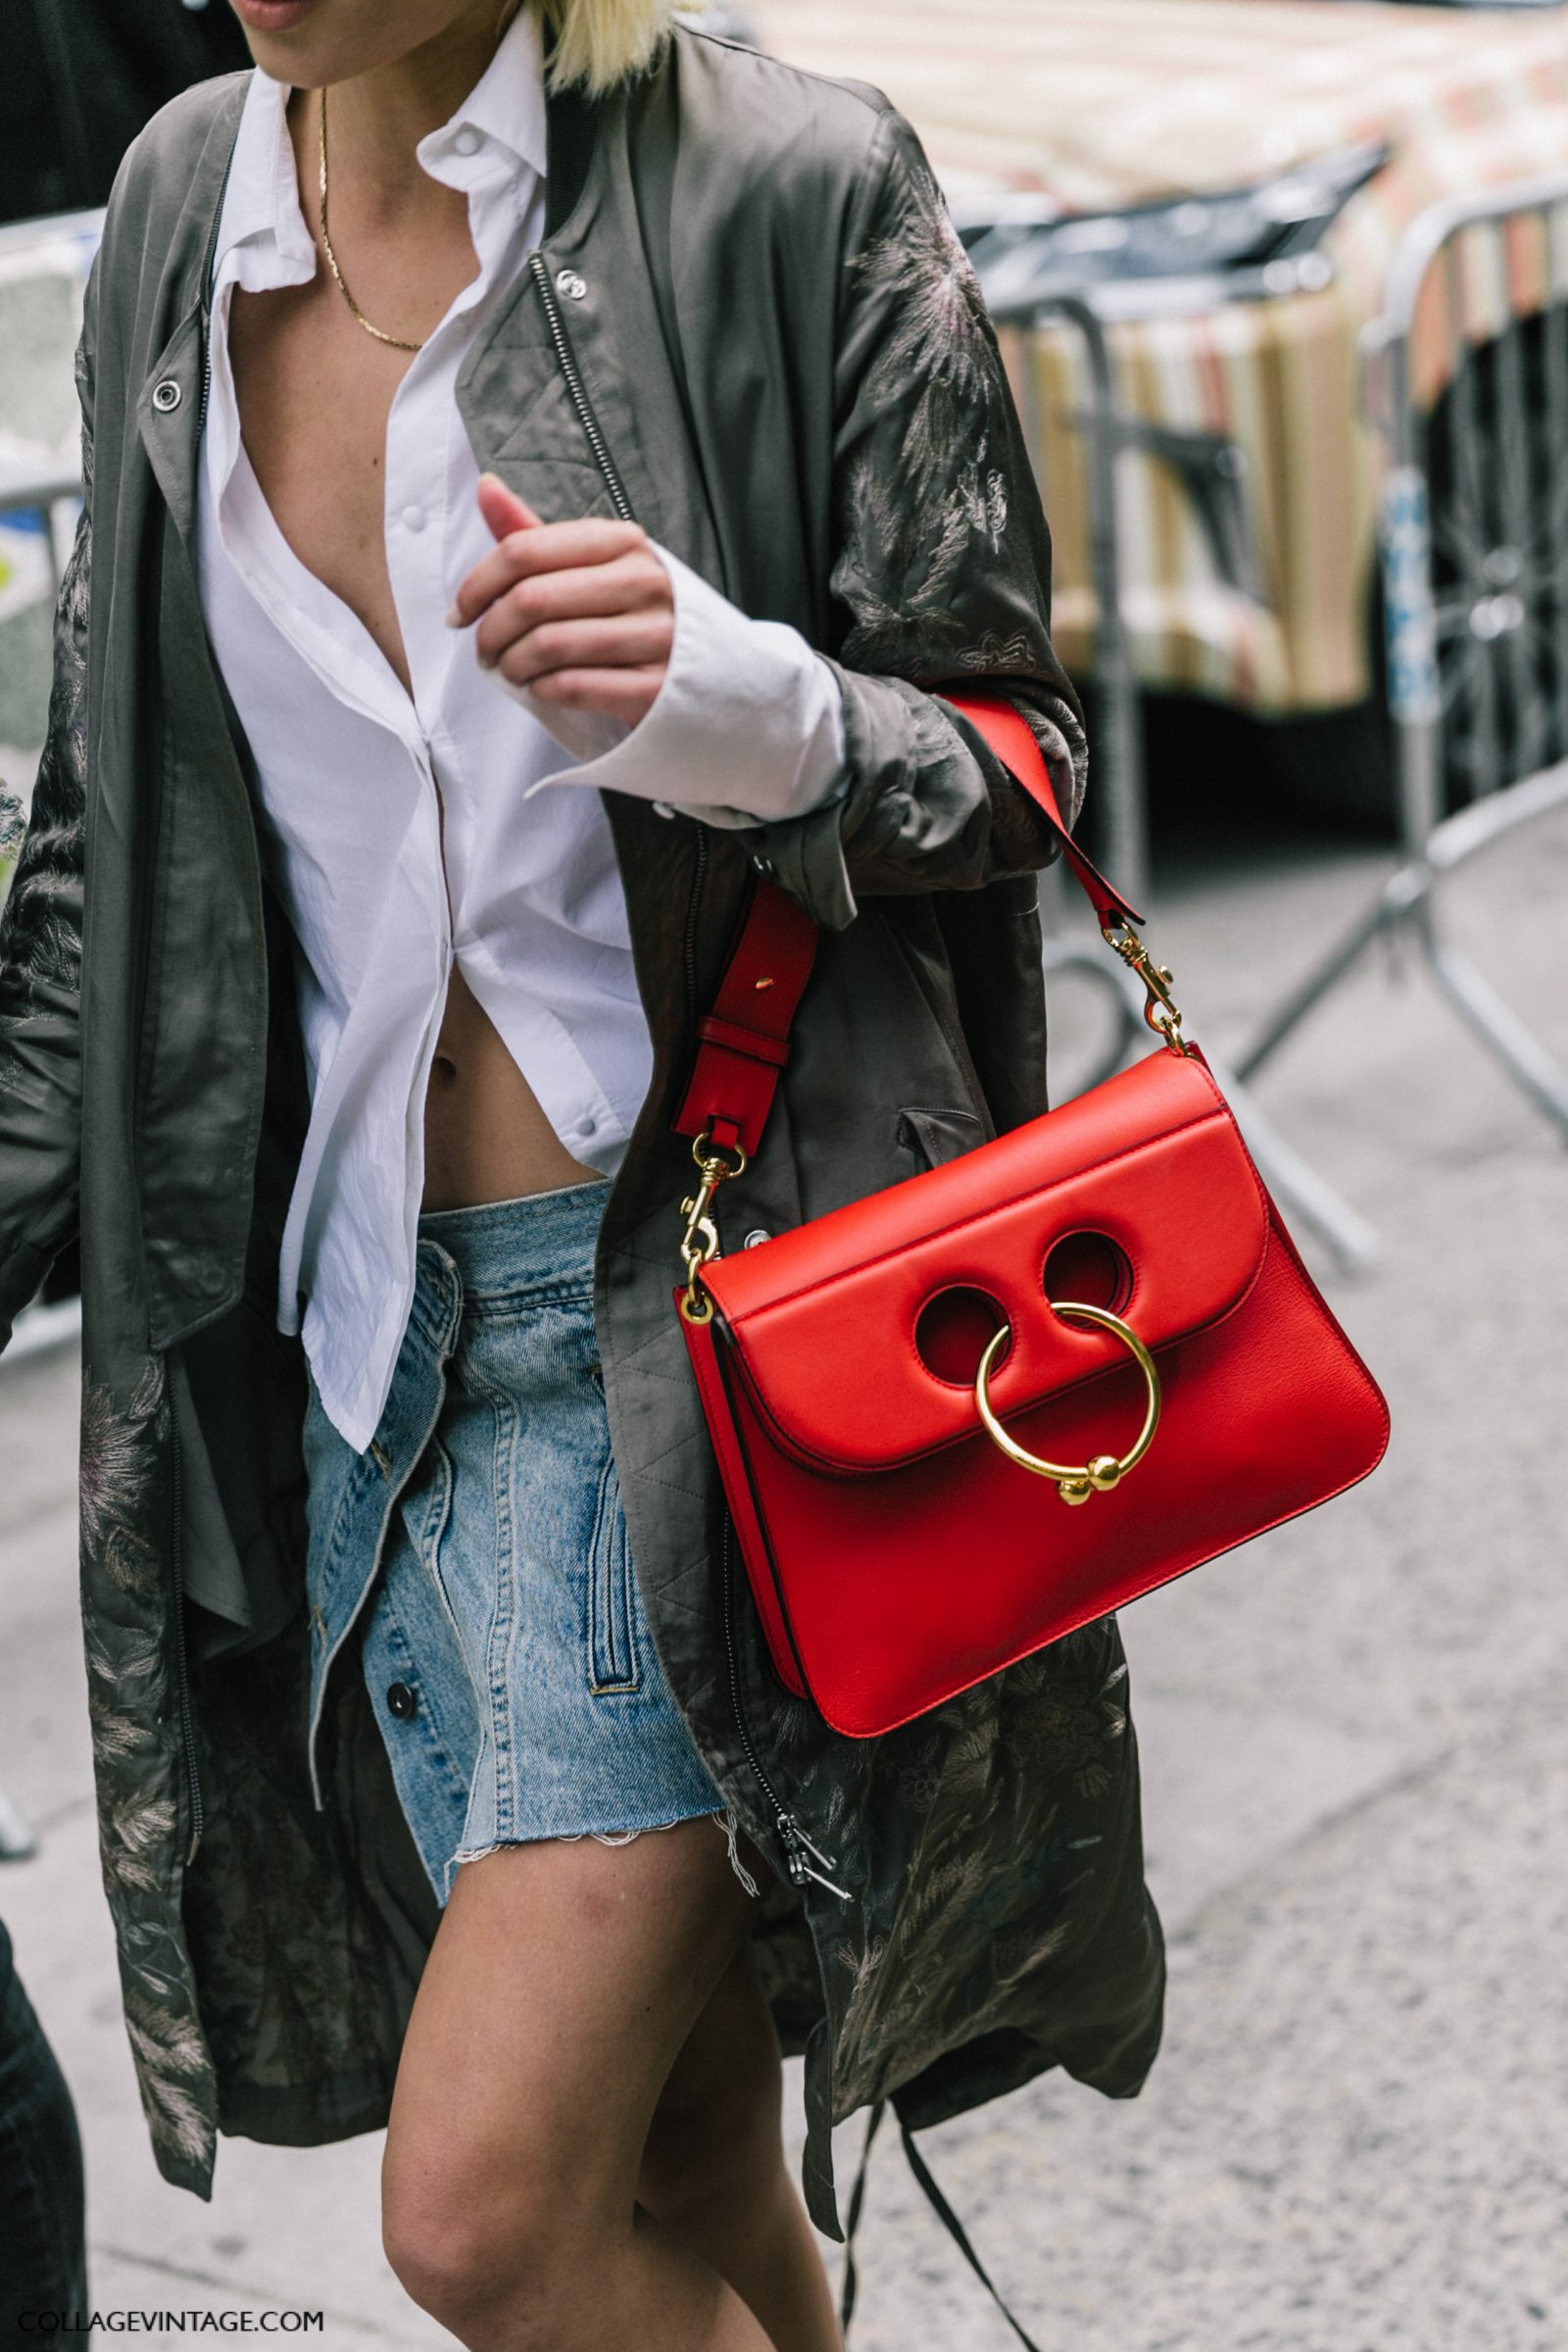 nyfw-new_york_fashion_week_ss17-street_style-outfits-collage_vintage-vintage-tome-87